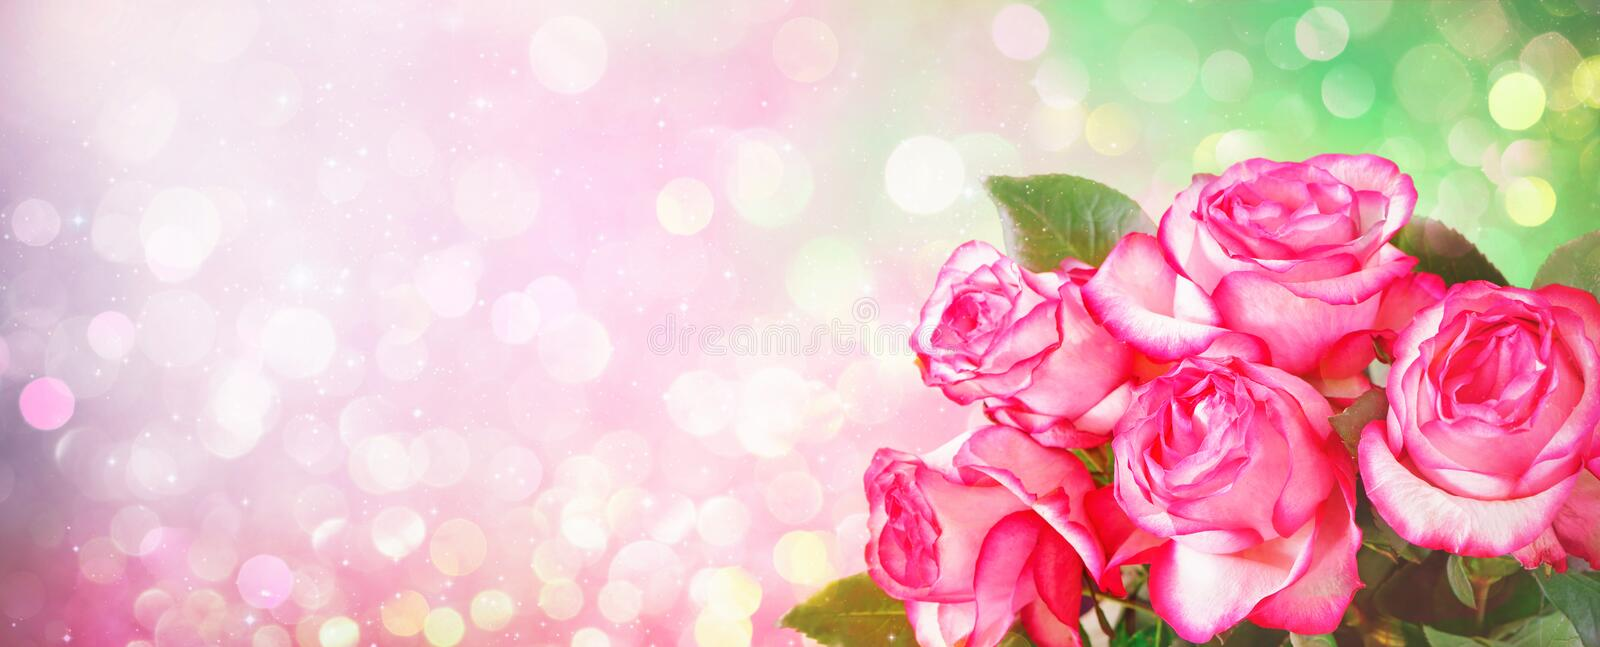 Romantic background with bouquet of pink roses for Valentines da stock photography